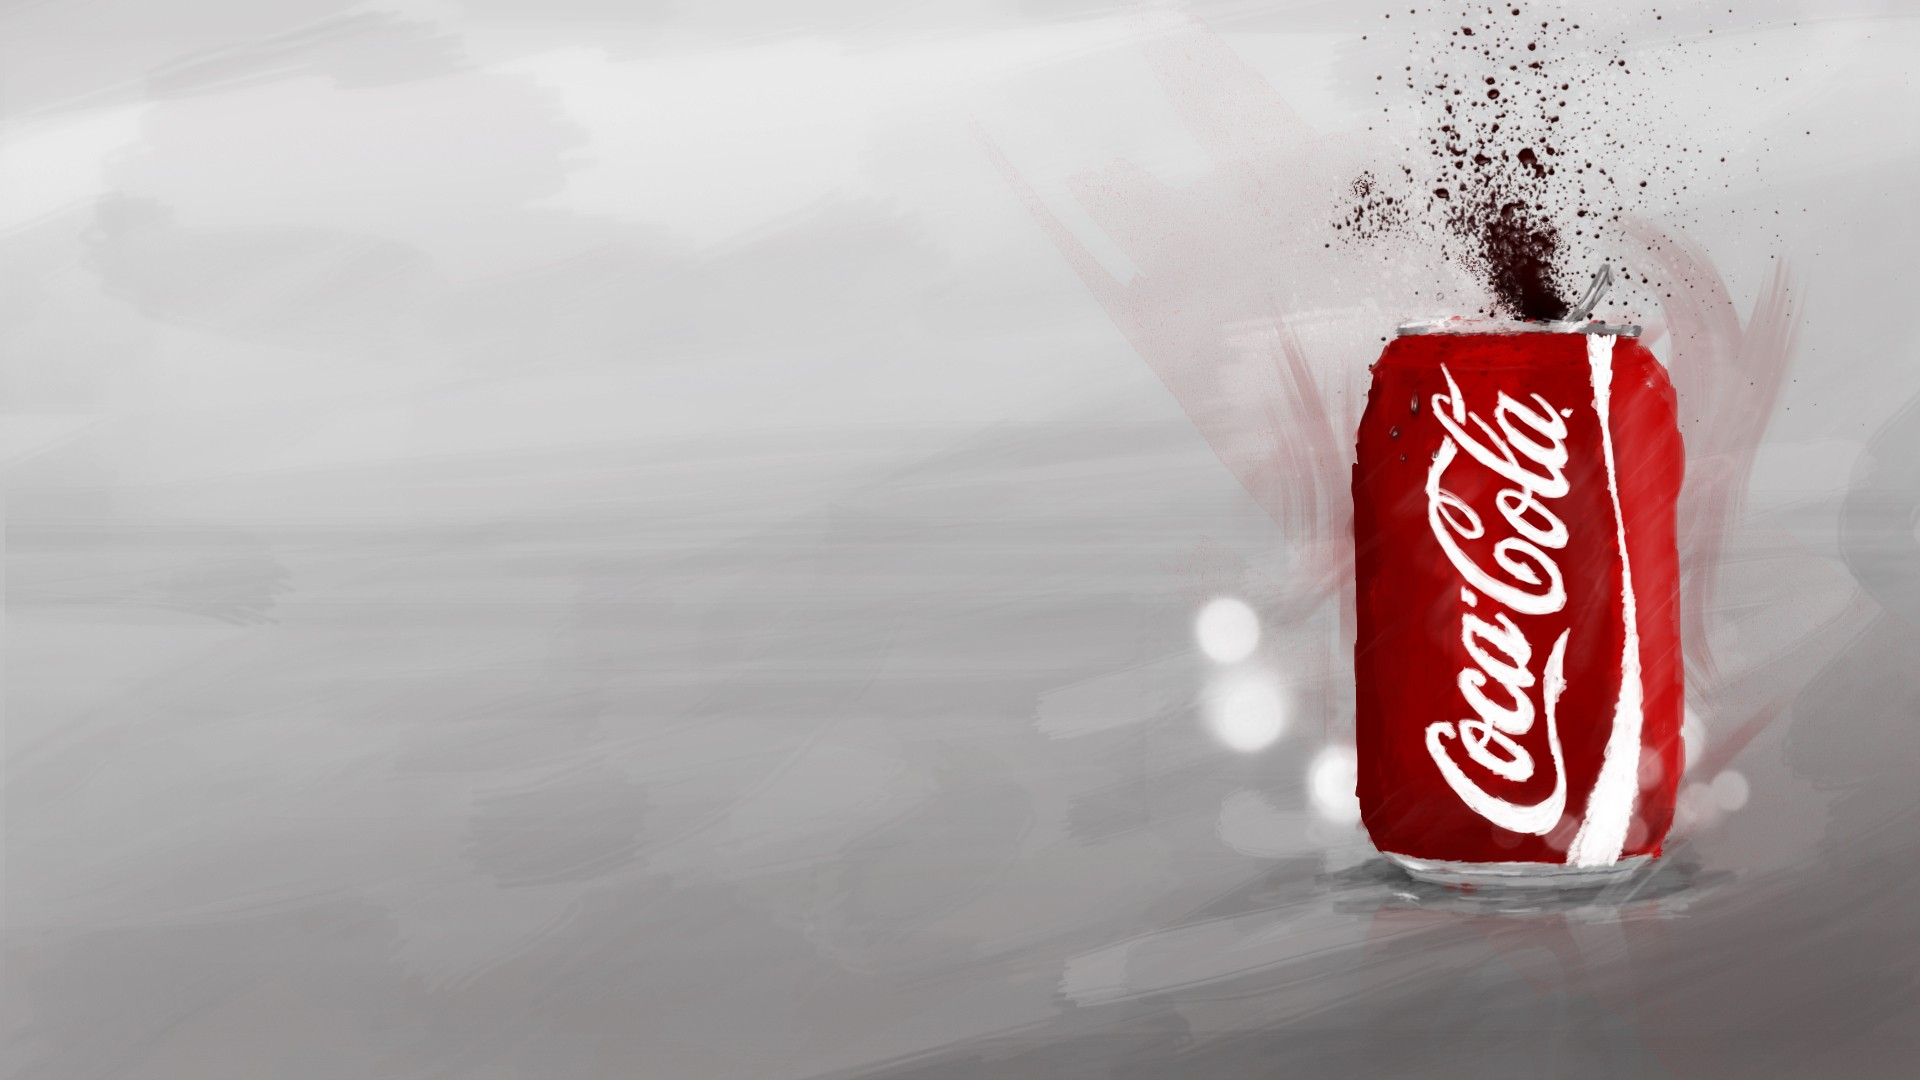 Coca Cola Backgrounds  Wallpaper  1920x1080